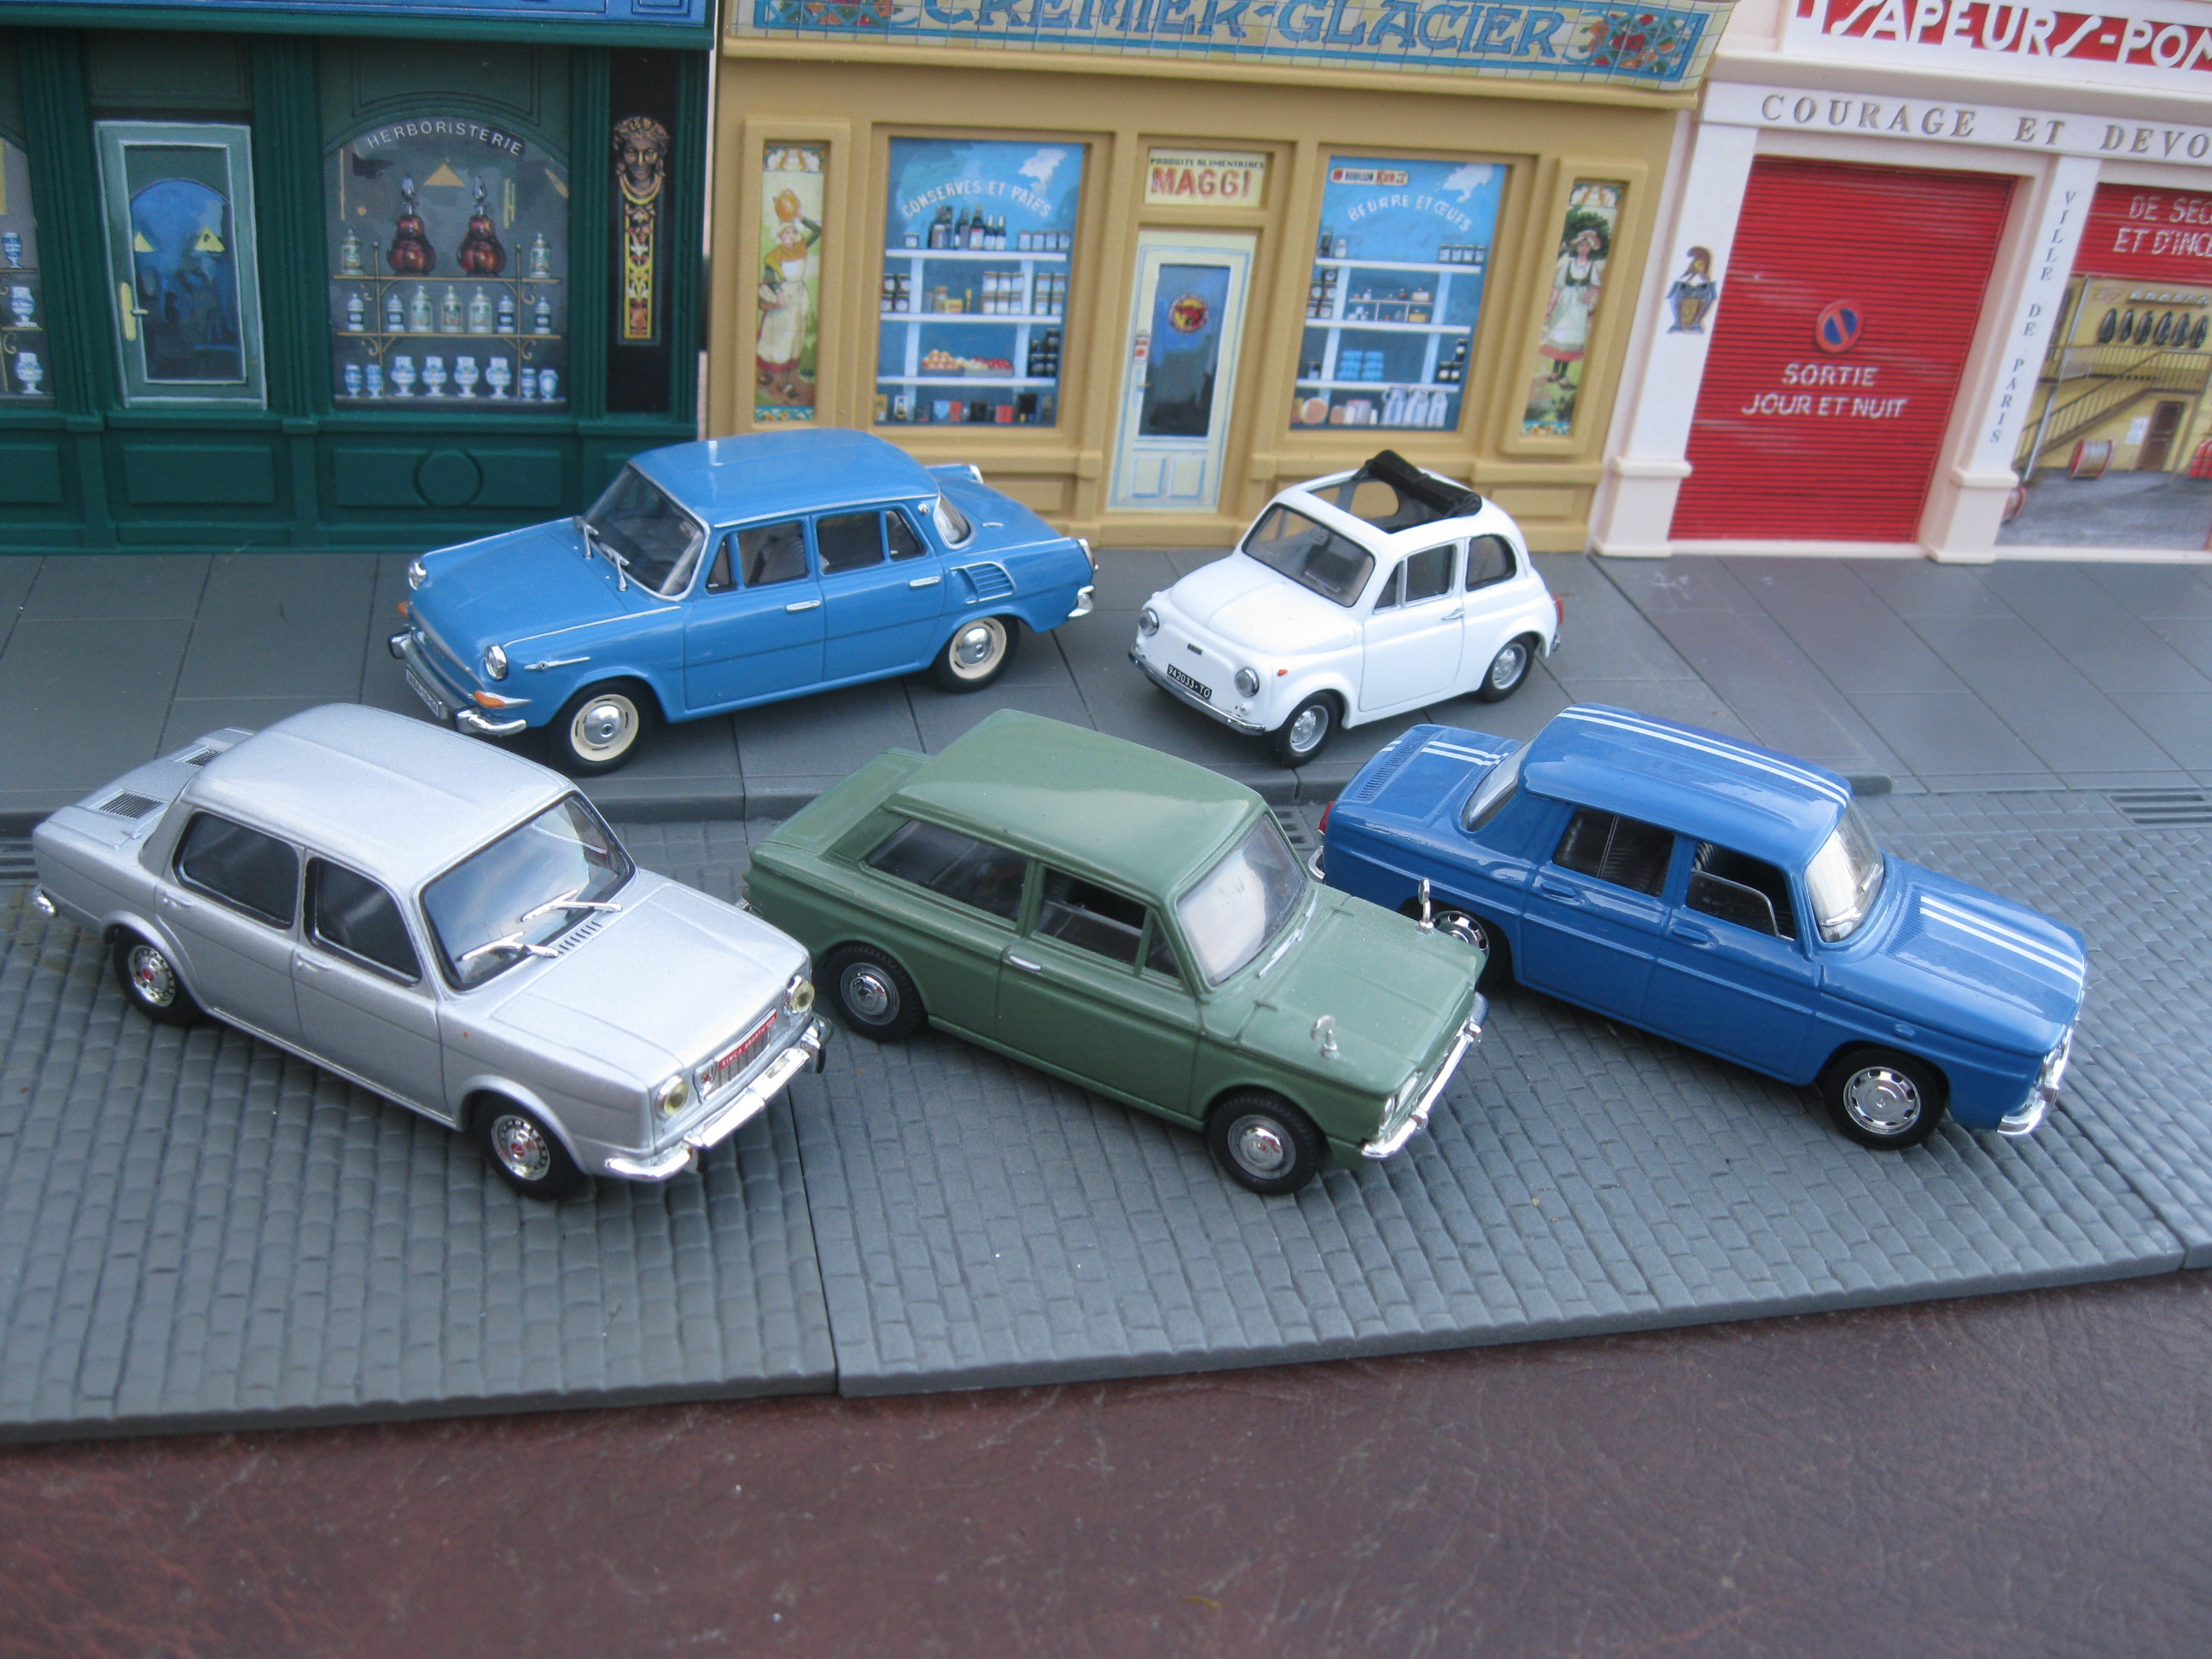 File:European rear engined saloon collection- Simca 1000 (1150 ... on